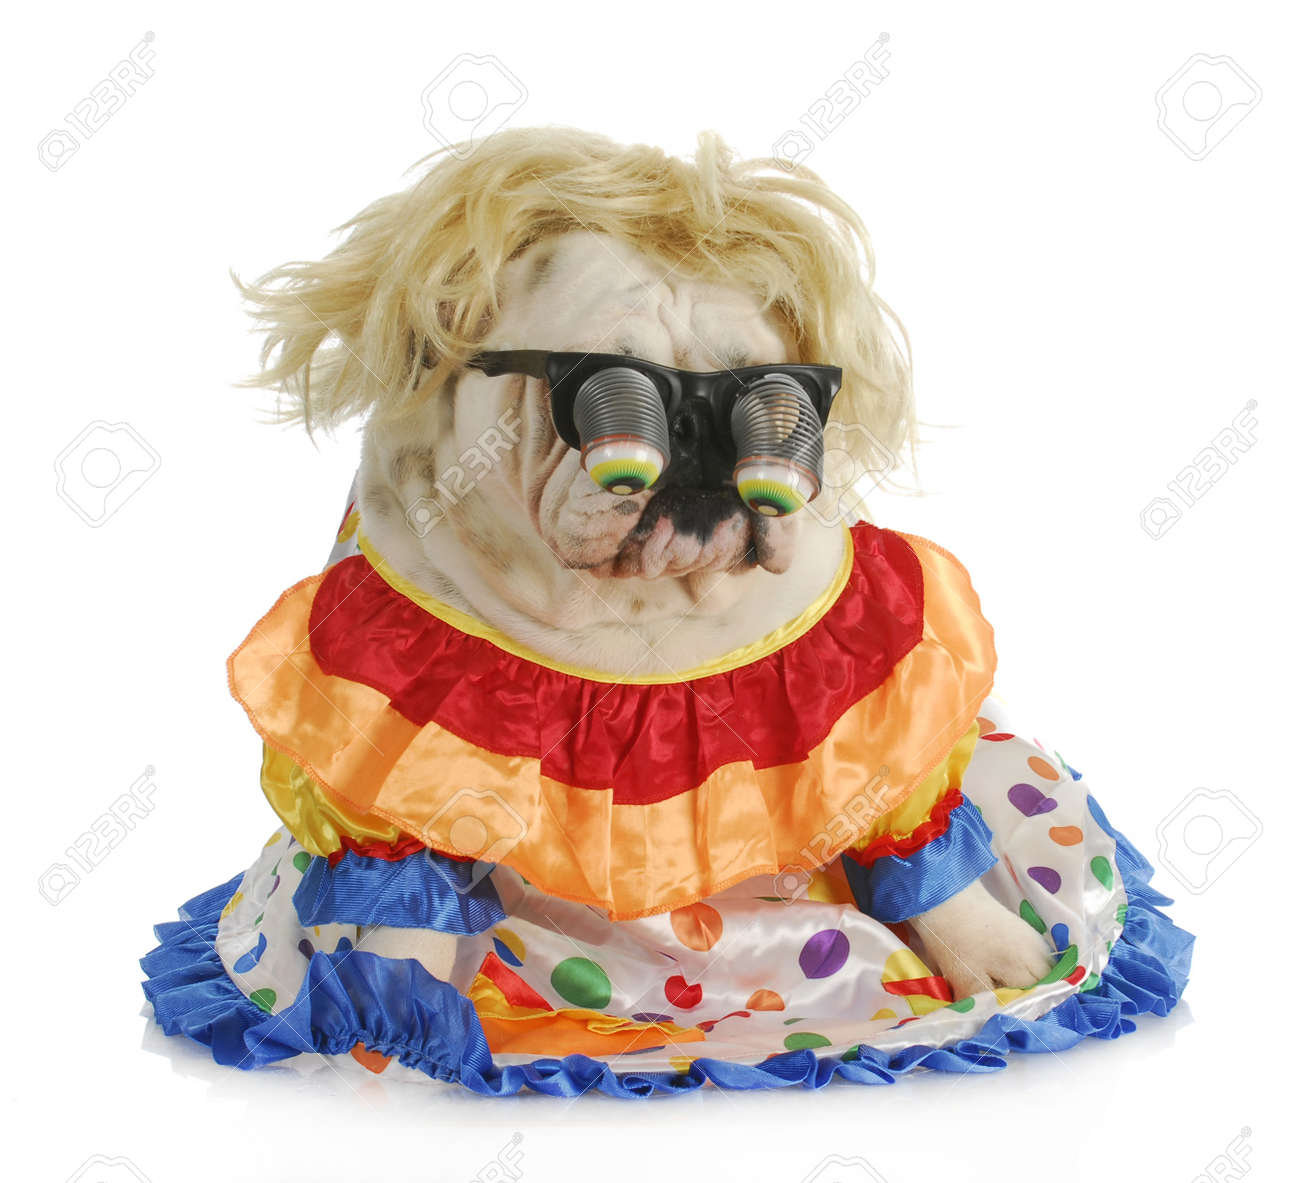 silly dog - english bulldog wearing silly glasses and clown costume Stock Photo - 11843540  sc 1 st  123RF.com & Silly Dog - English Bulldog Wearing Silly Glasses And Clown Costume ...